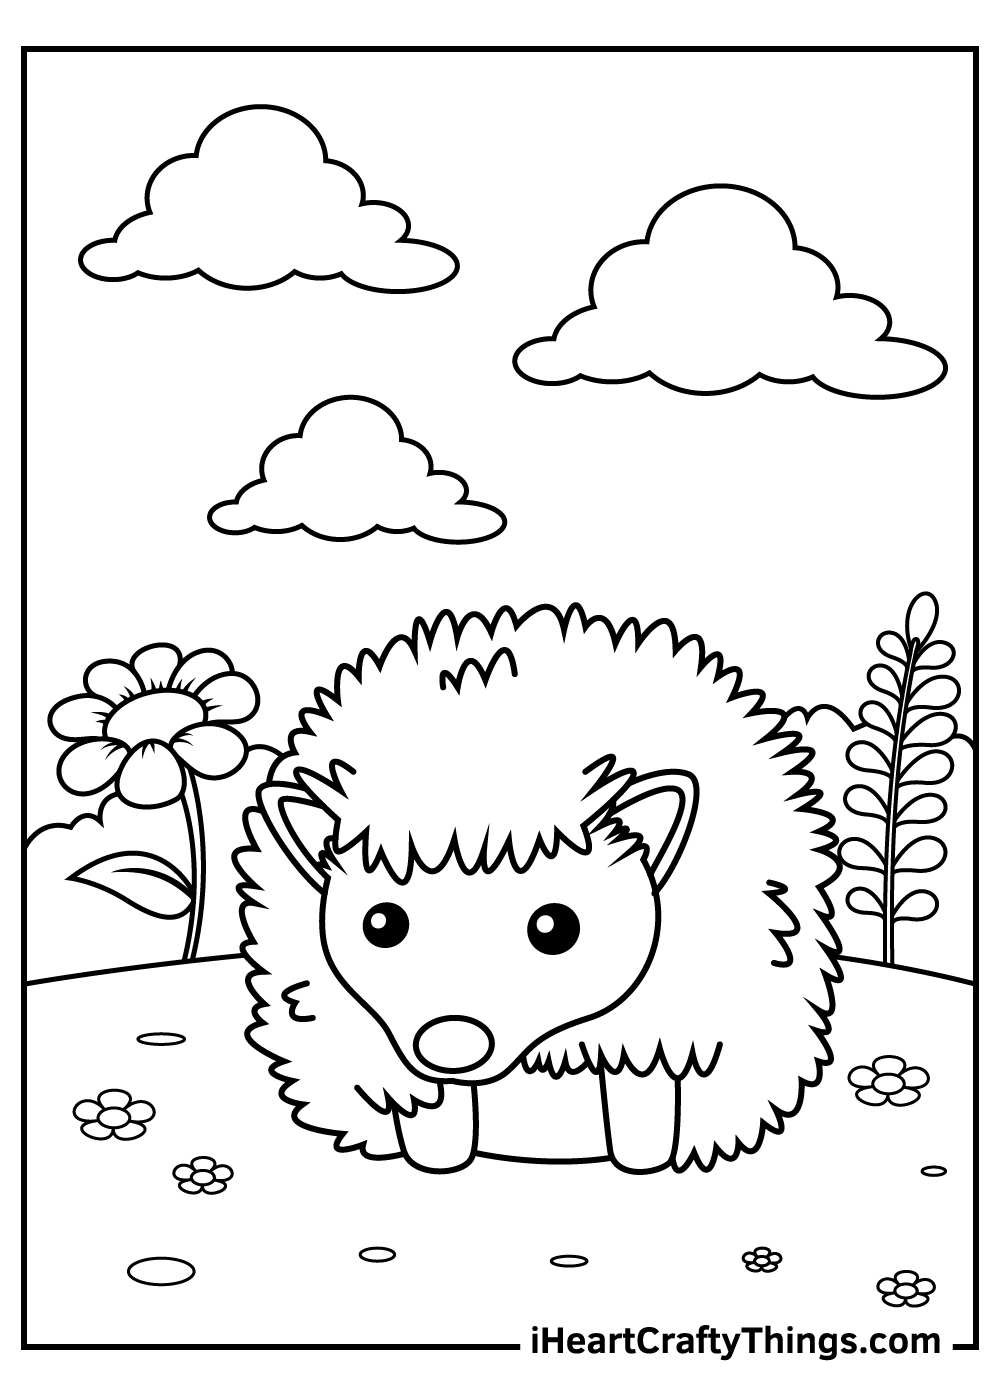 hedgehog coloring updated sonic fall sheets kite turns into bird free downloads pencils coloring pages Hedgehog Coloring Page